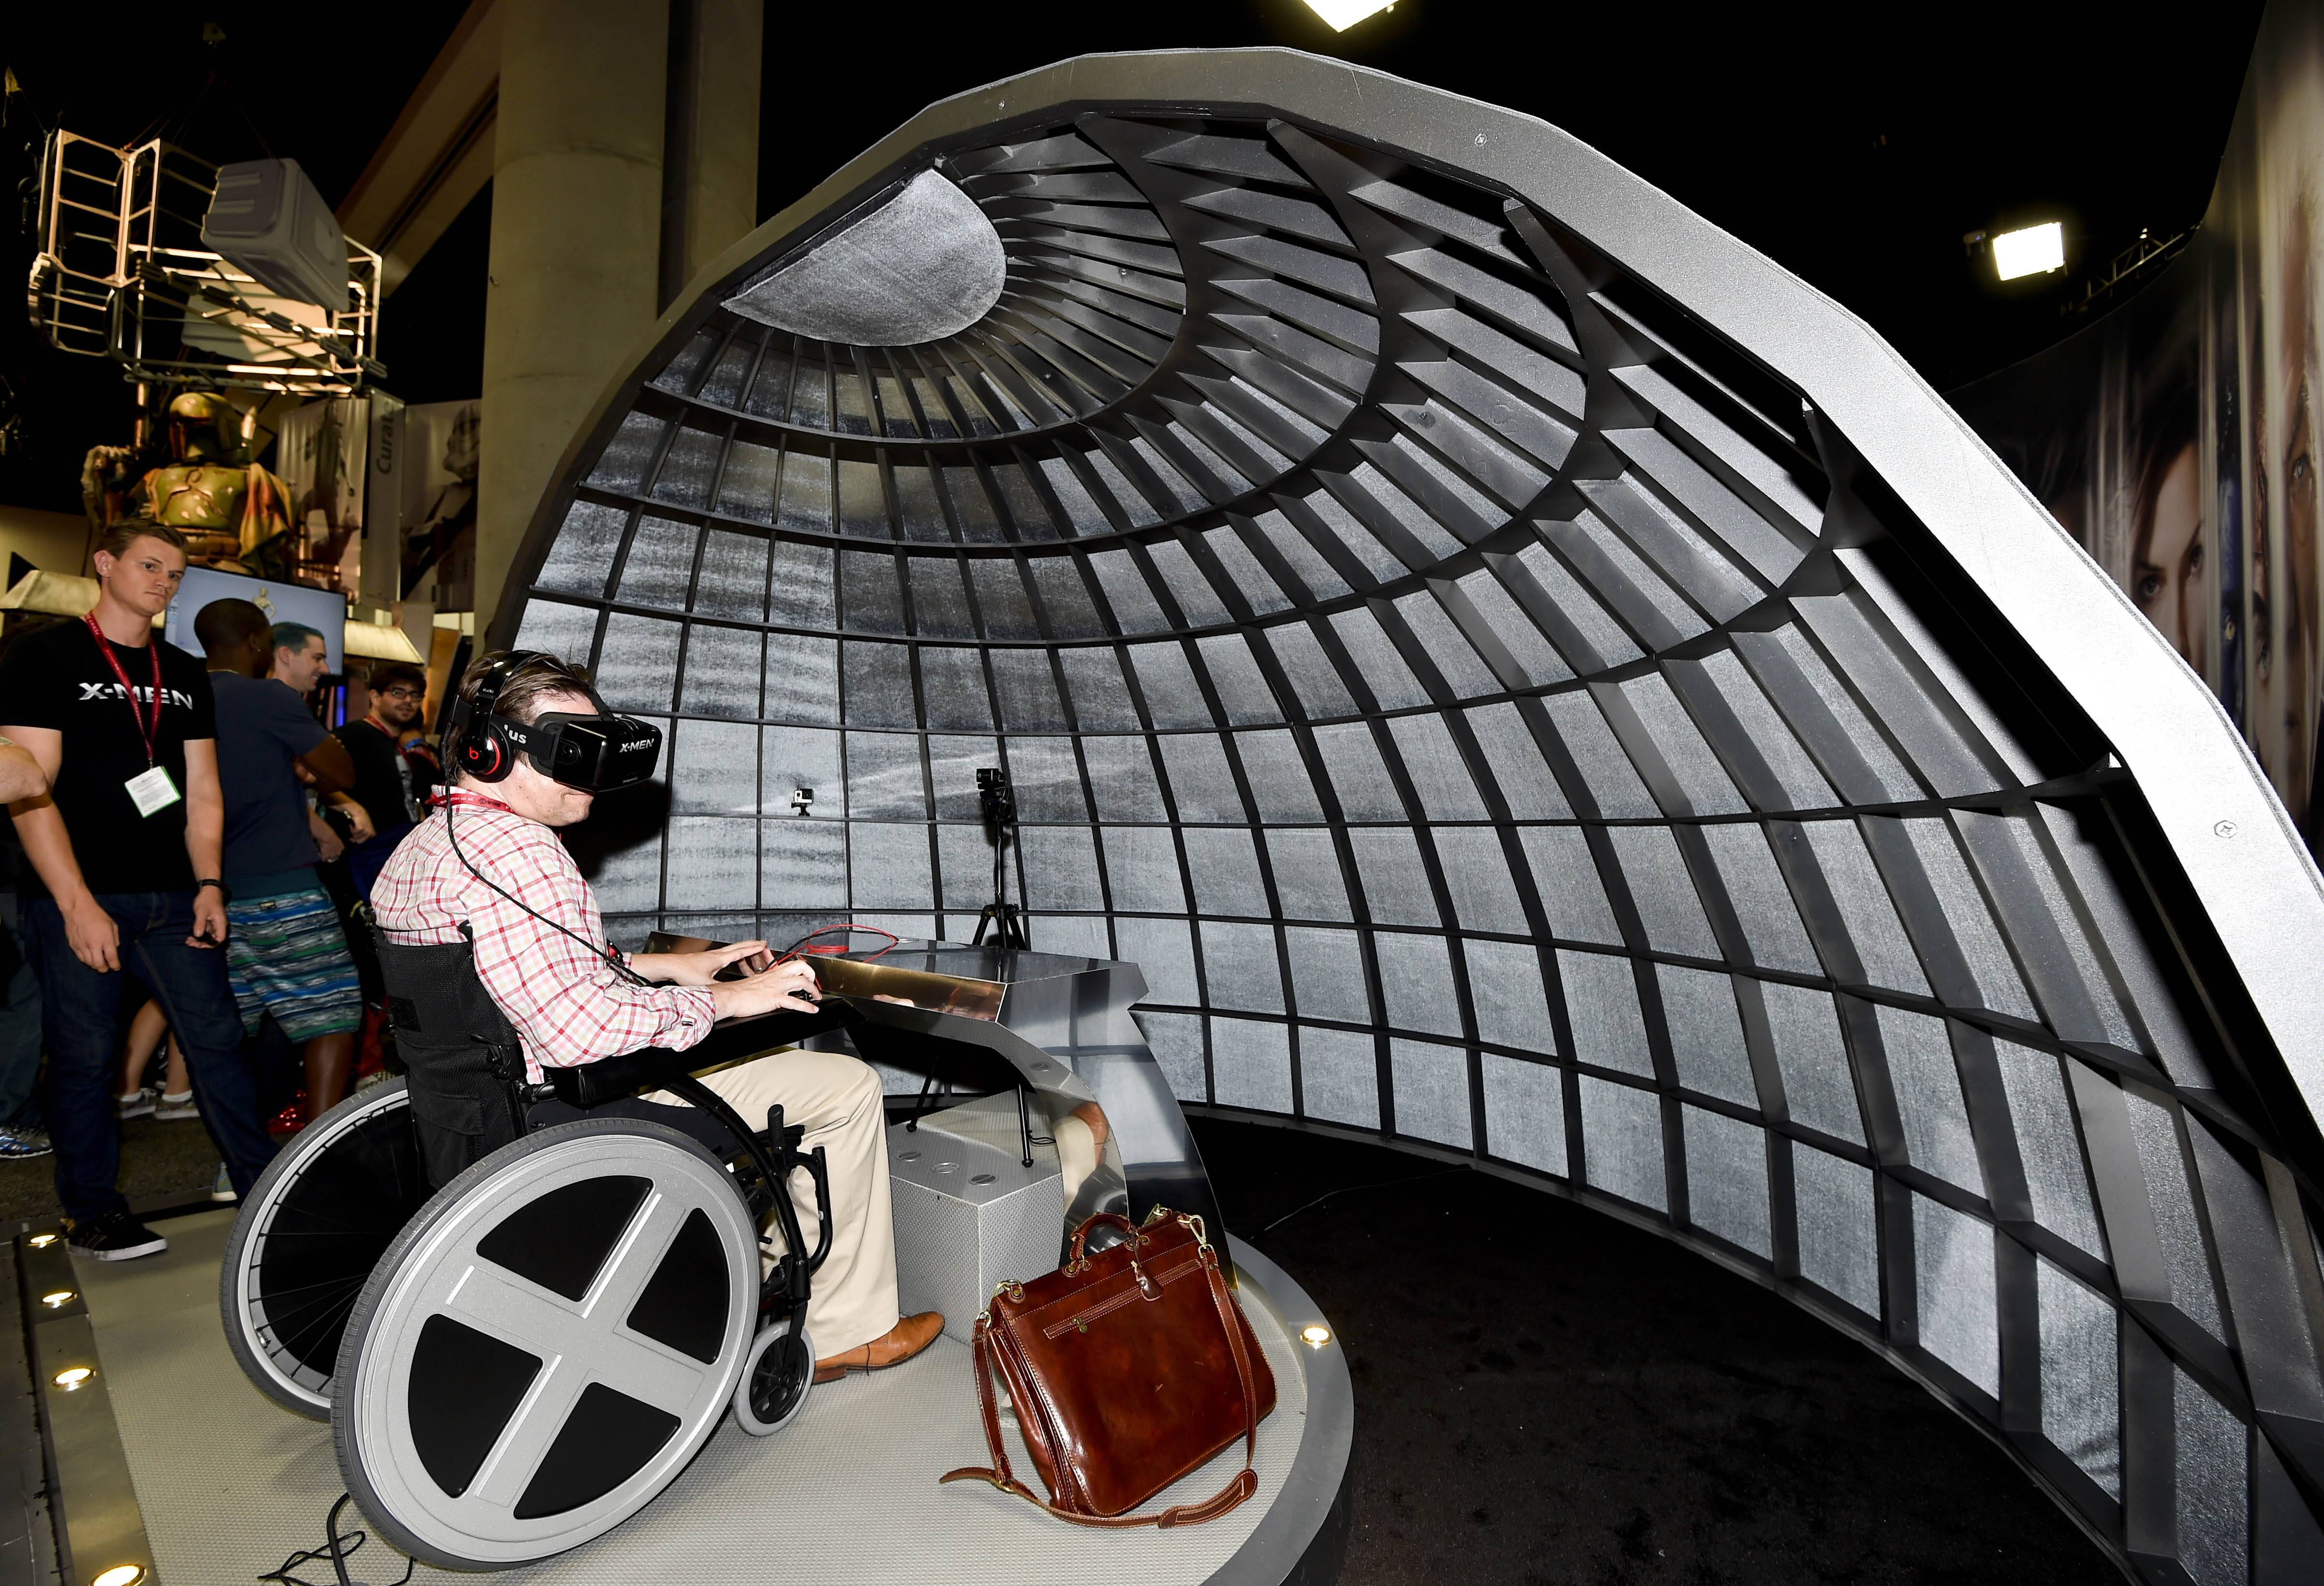 A Comic-Con fan sits in the X-Men Cerebral Experience during preview night Wednesday at the 2014 Comic-Con International Convention in San Diego.